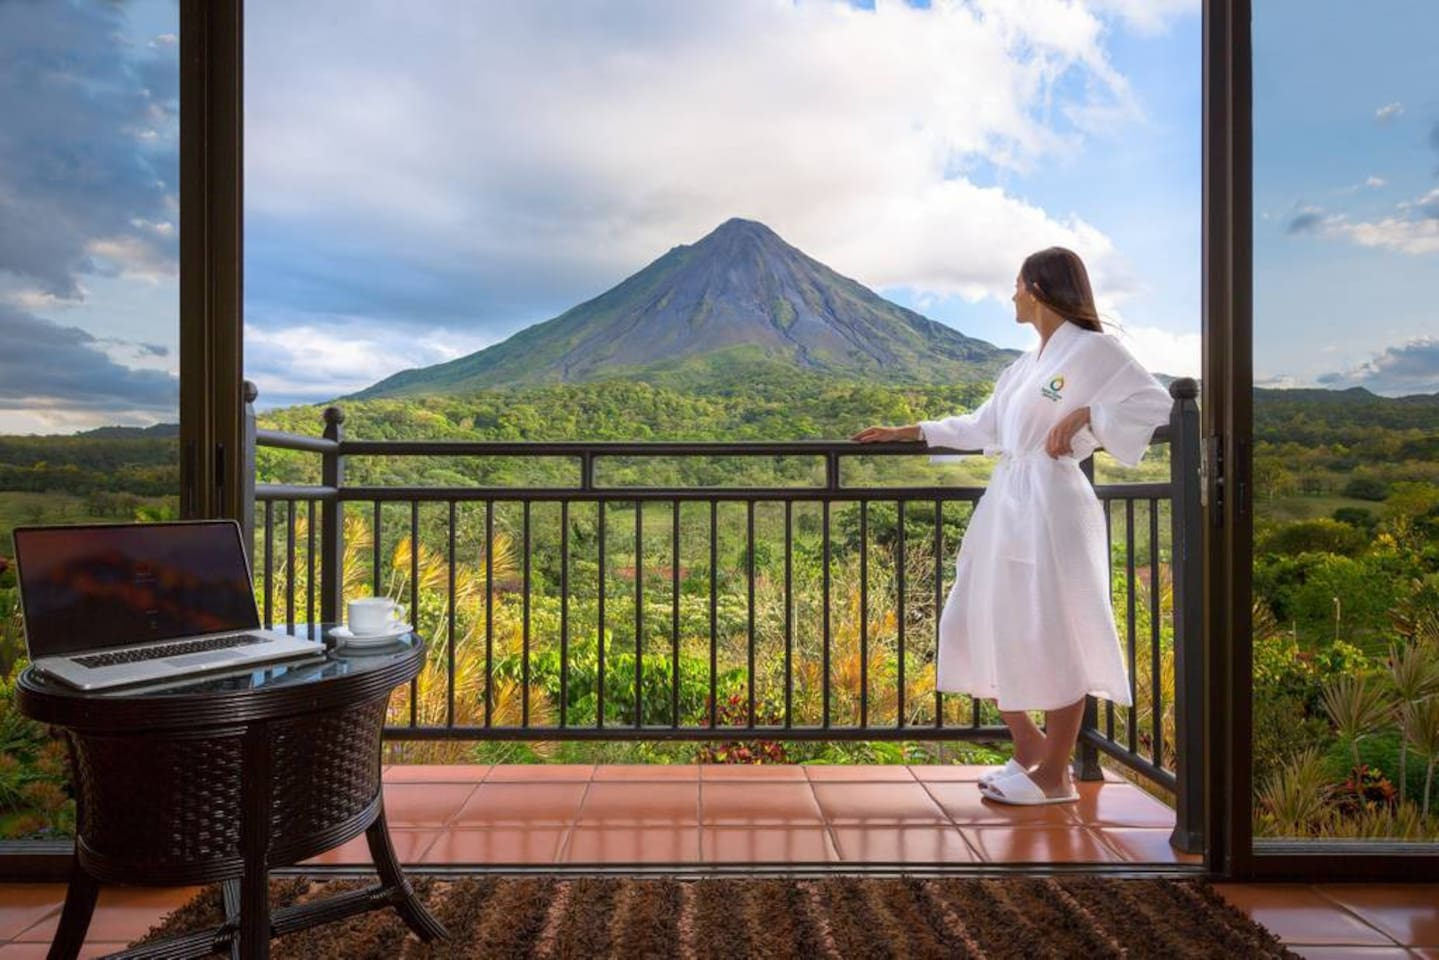 Enjoy the view from your room: Arenal Volcano is just in front of you!